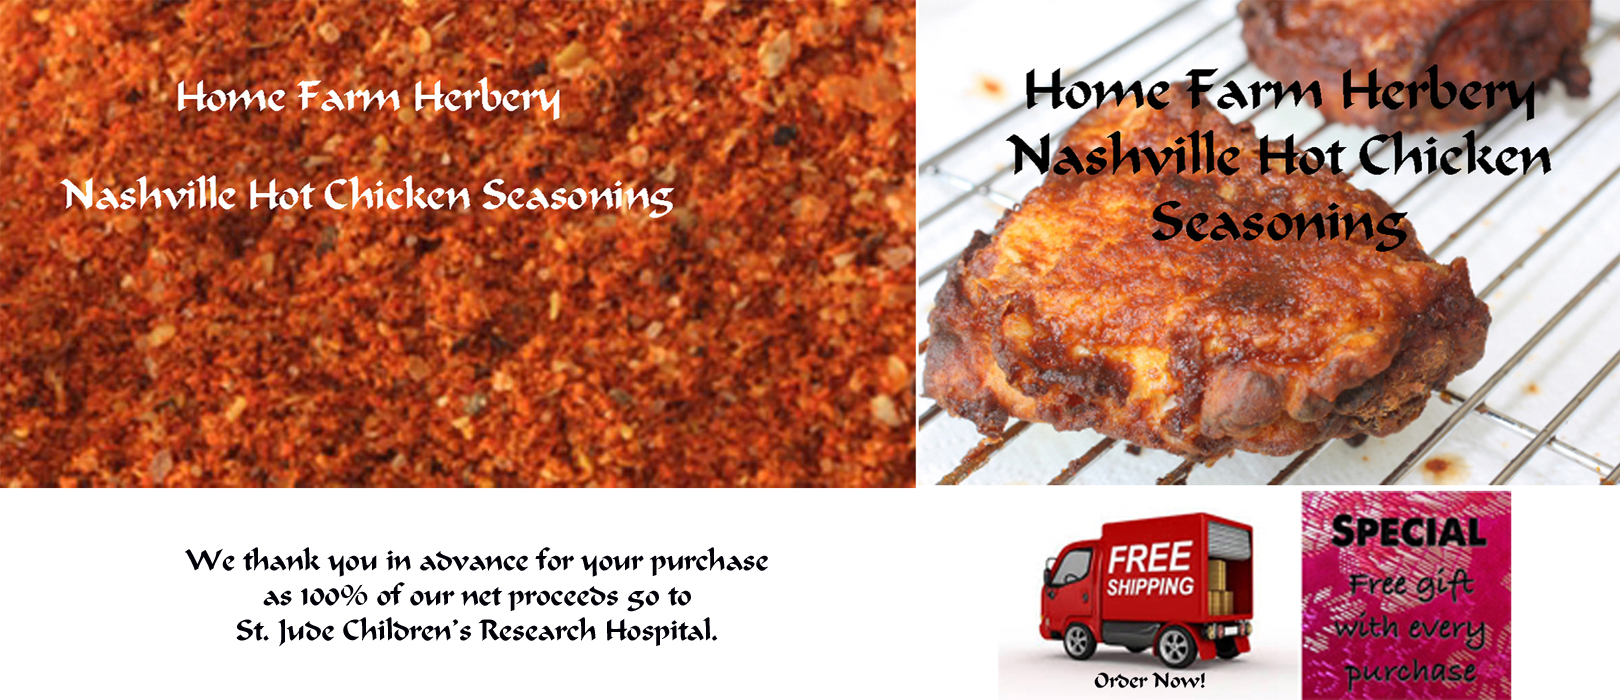 FREE gift when you Order Nashville Hot Chicken Seasoning now + free shipping!